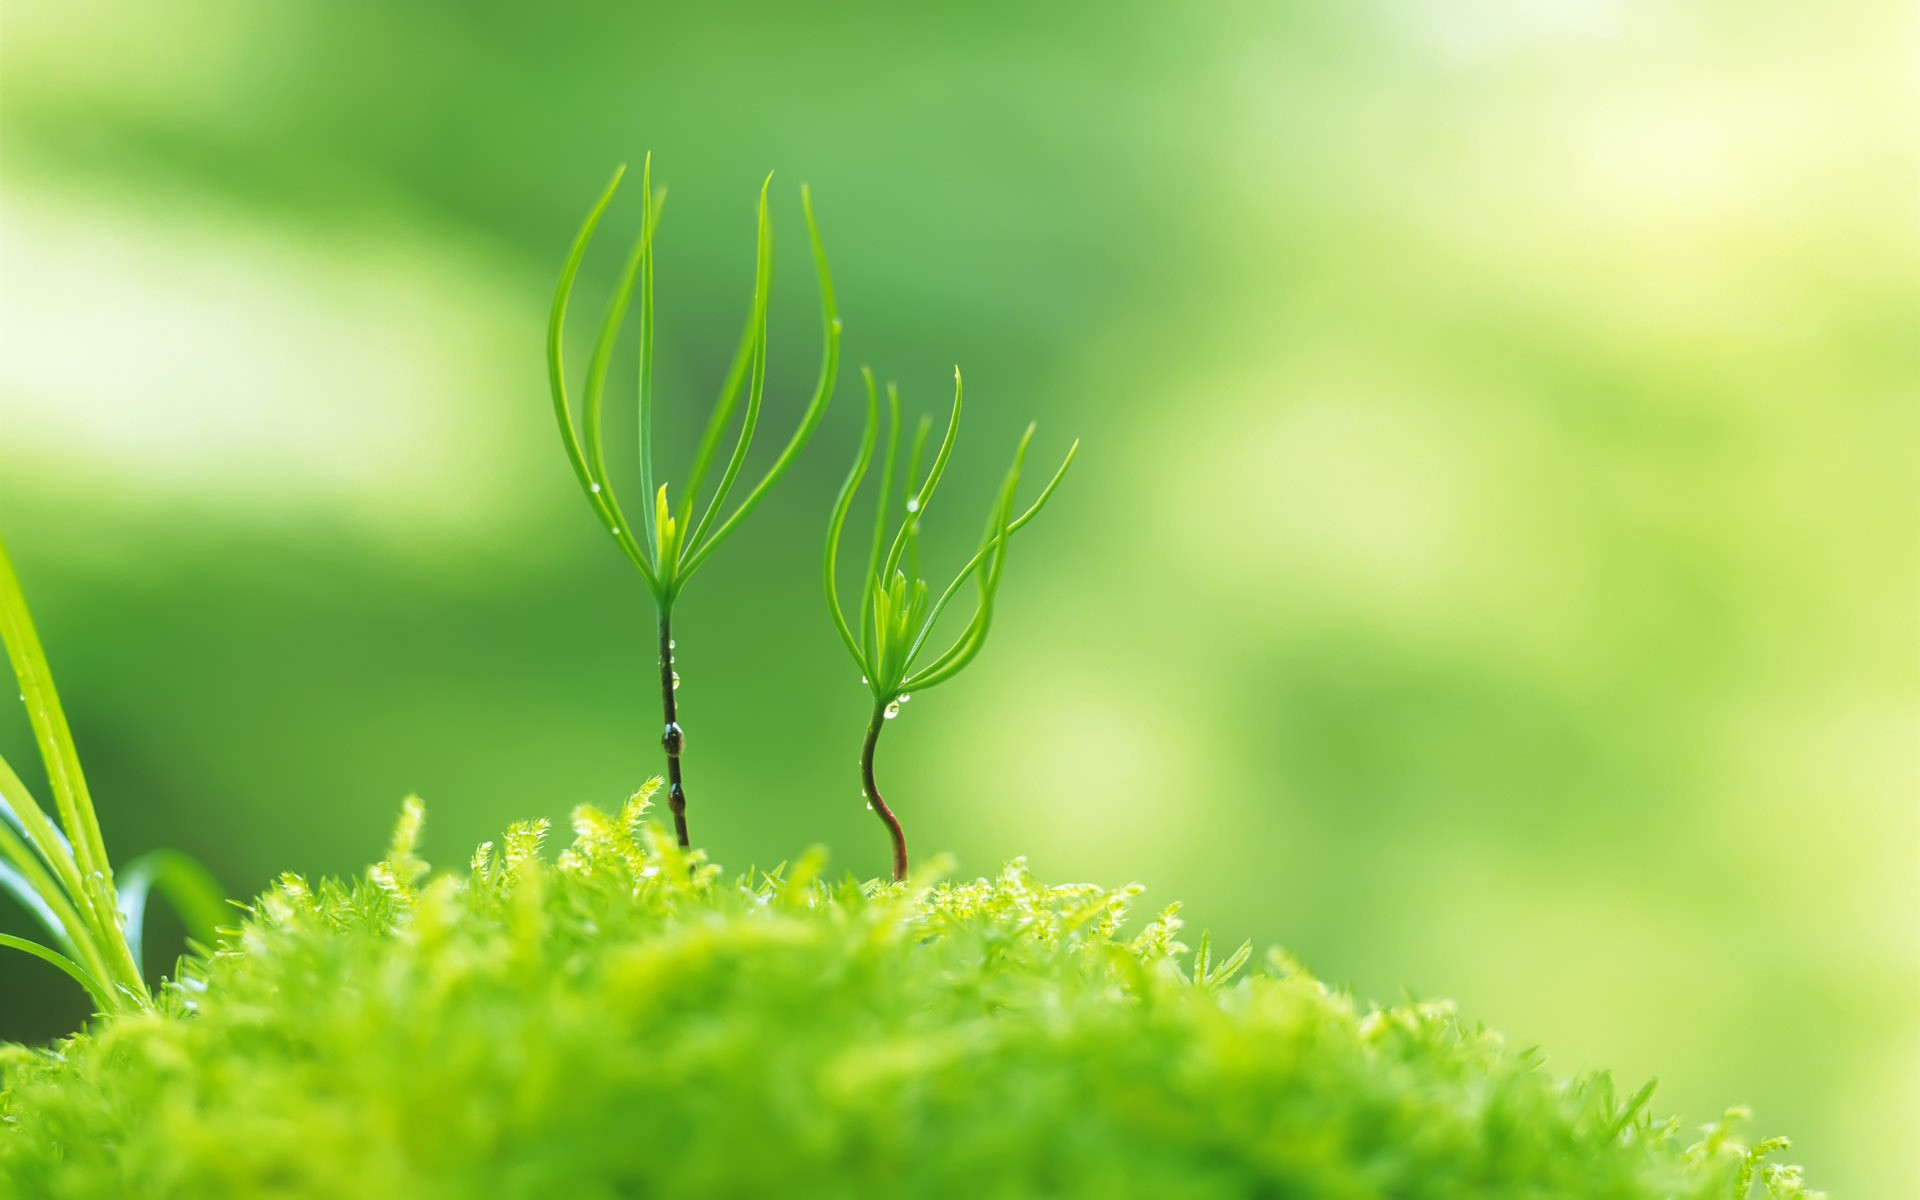 Amazing Green Plant Macro Wallpaper Background Wallpaper